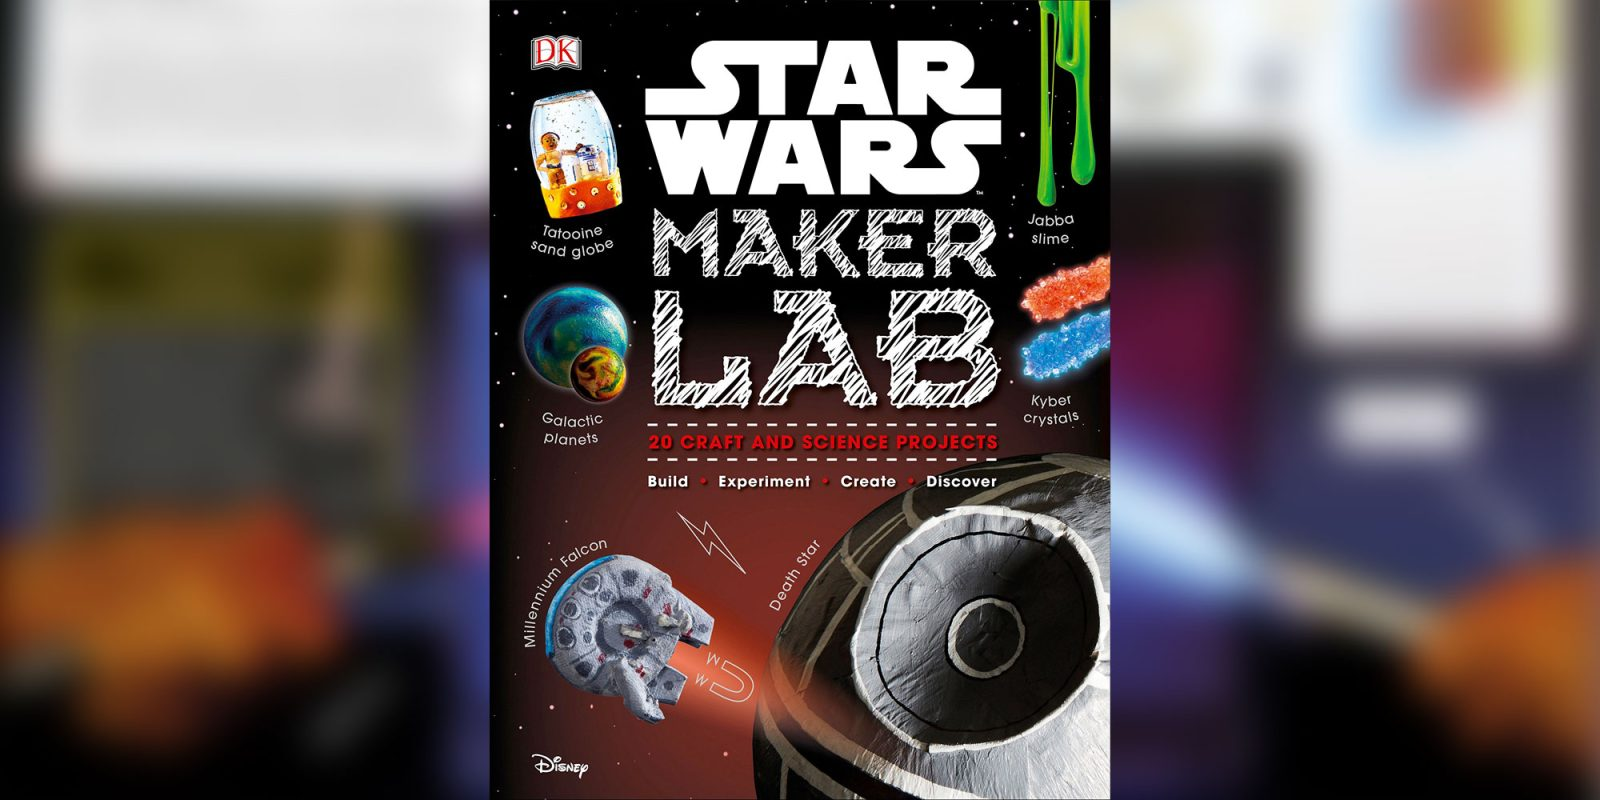 Star Wars Maker Lab has 20 craft and science projects for just $12.50